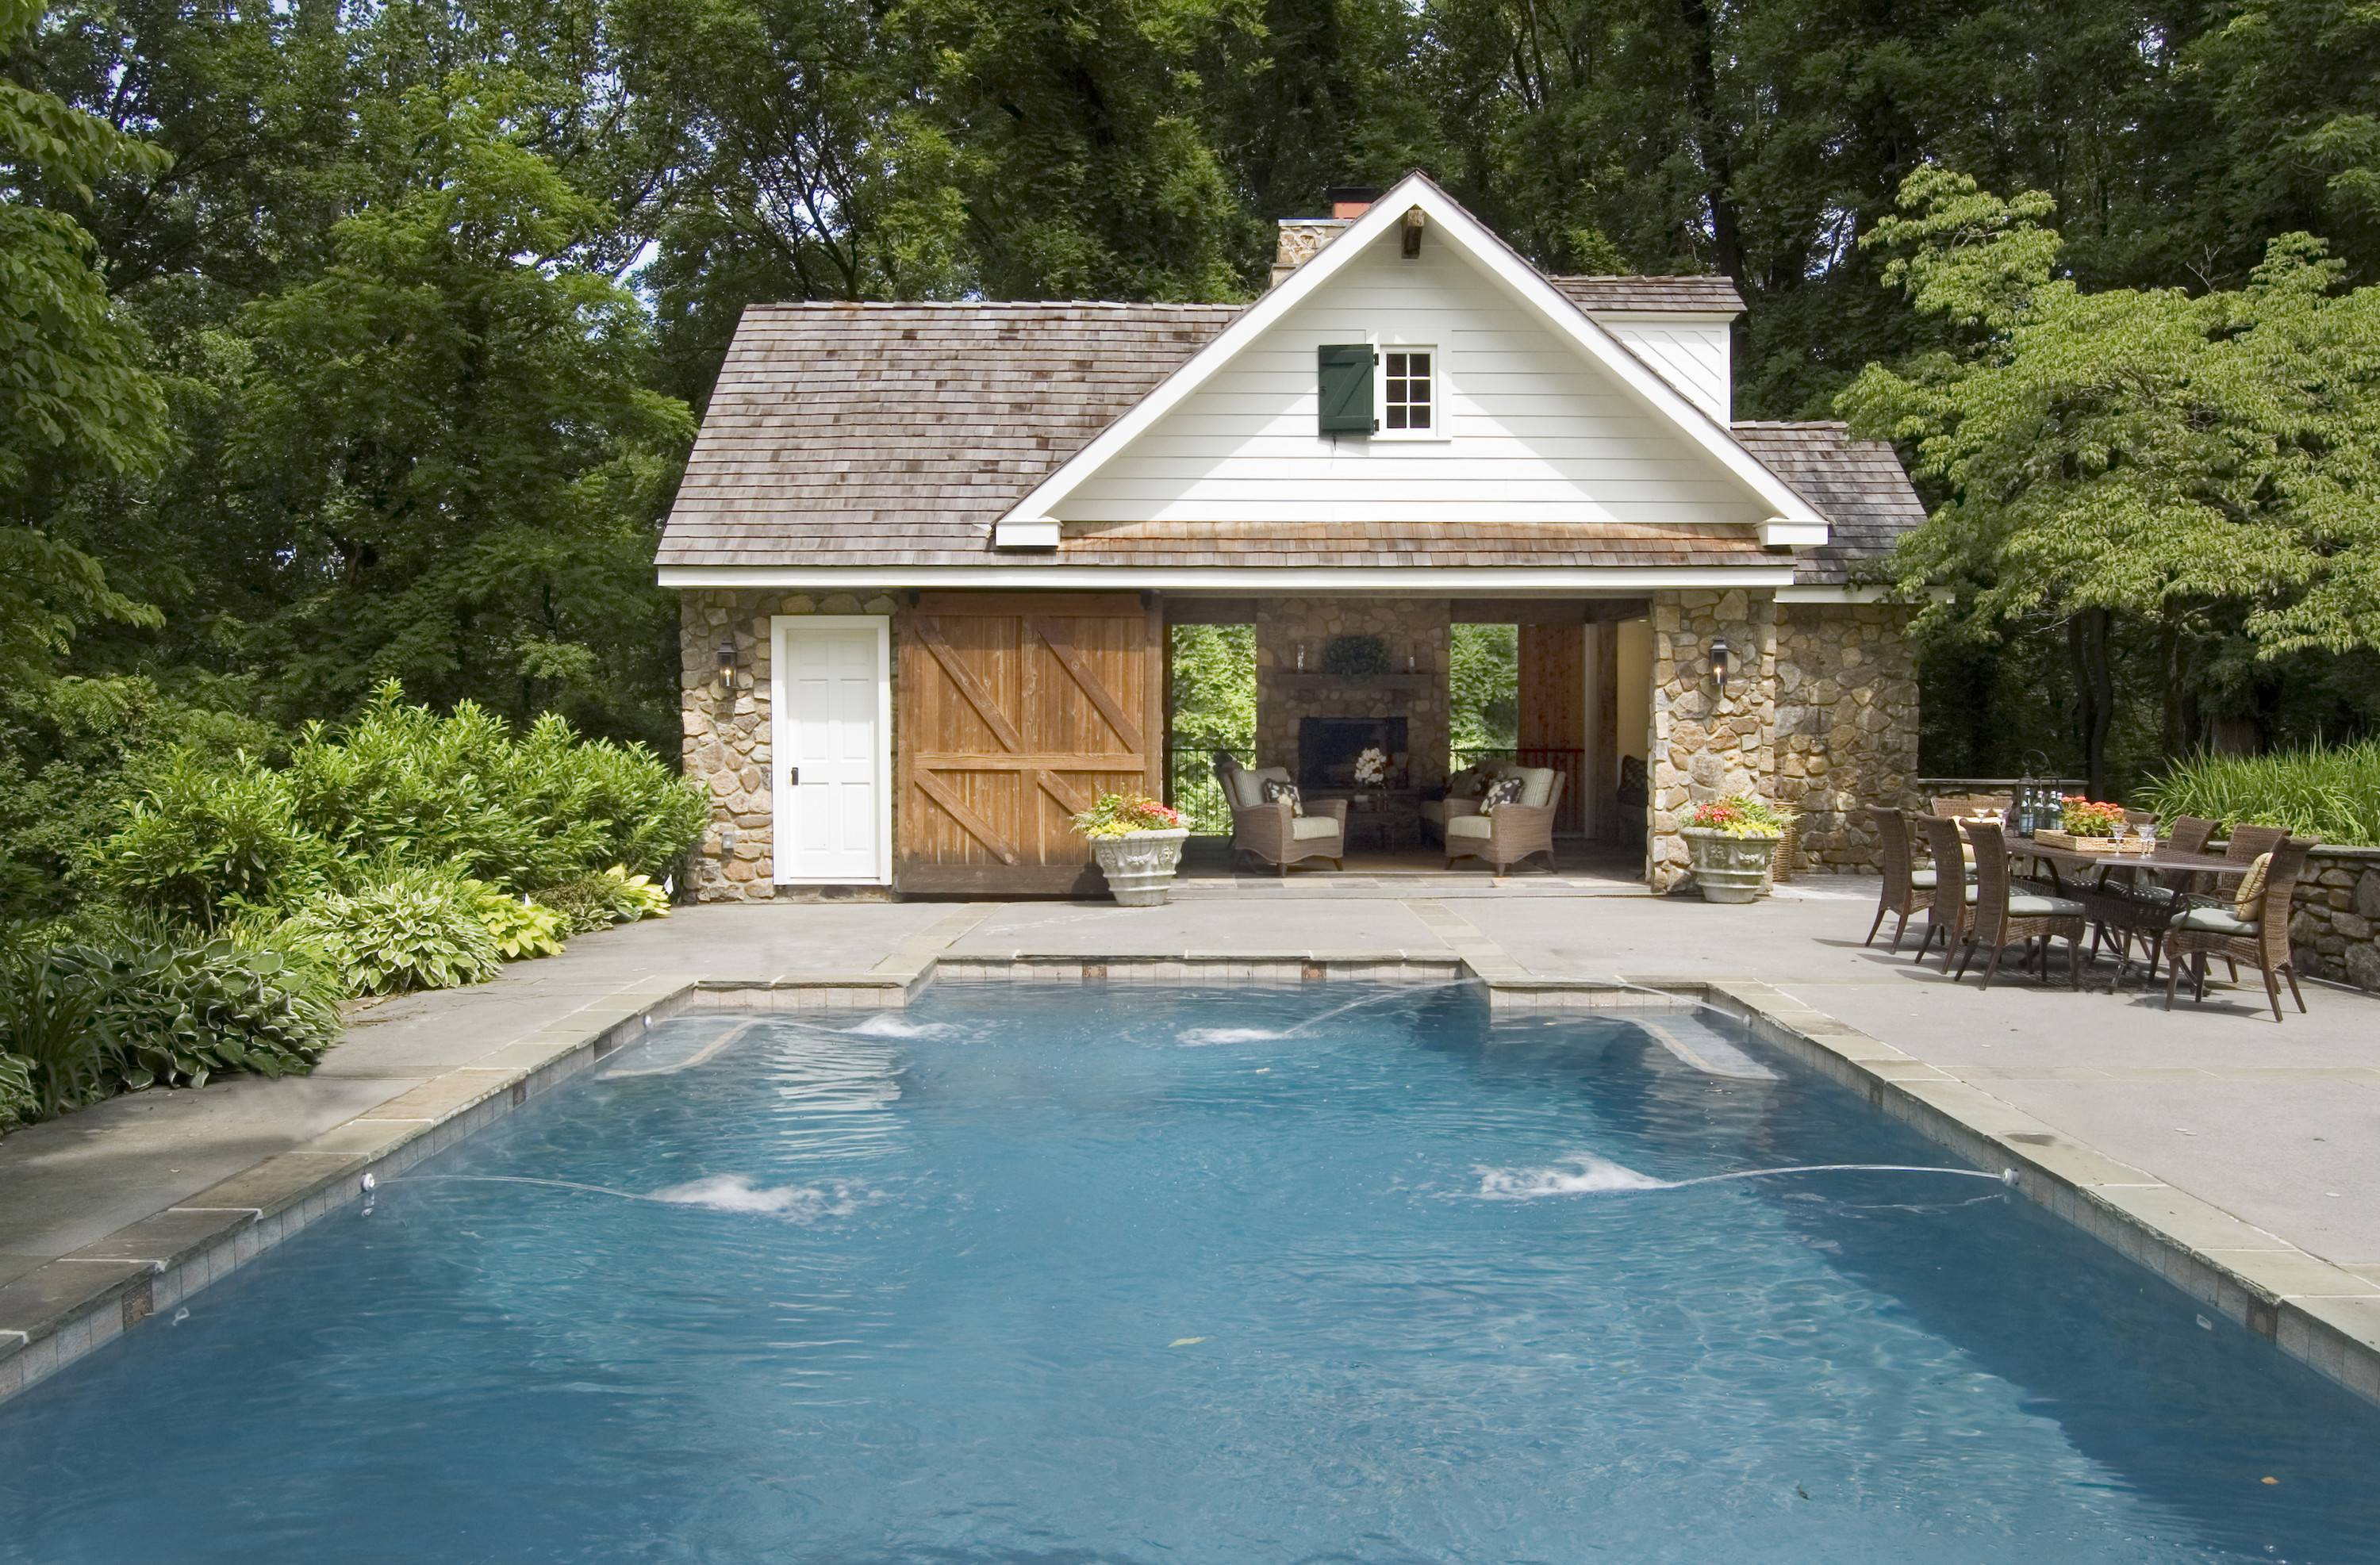 Pool House Architecture Construction Malvern